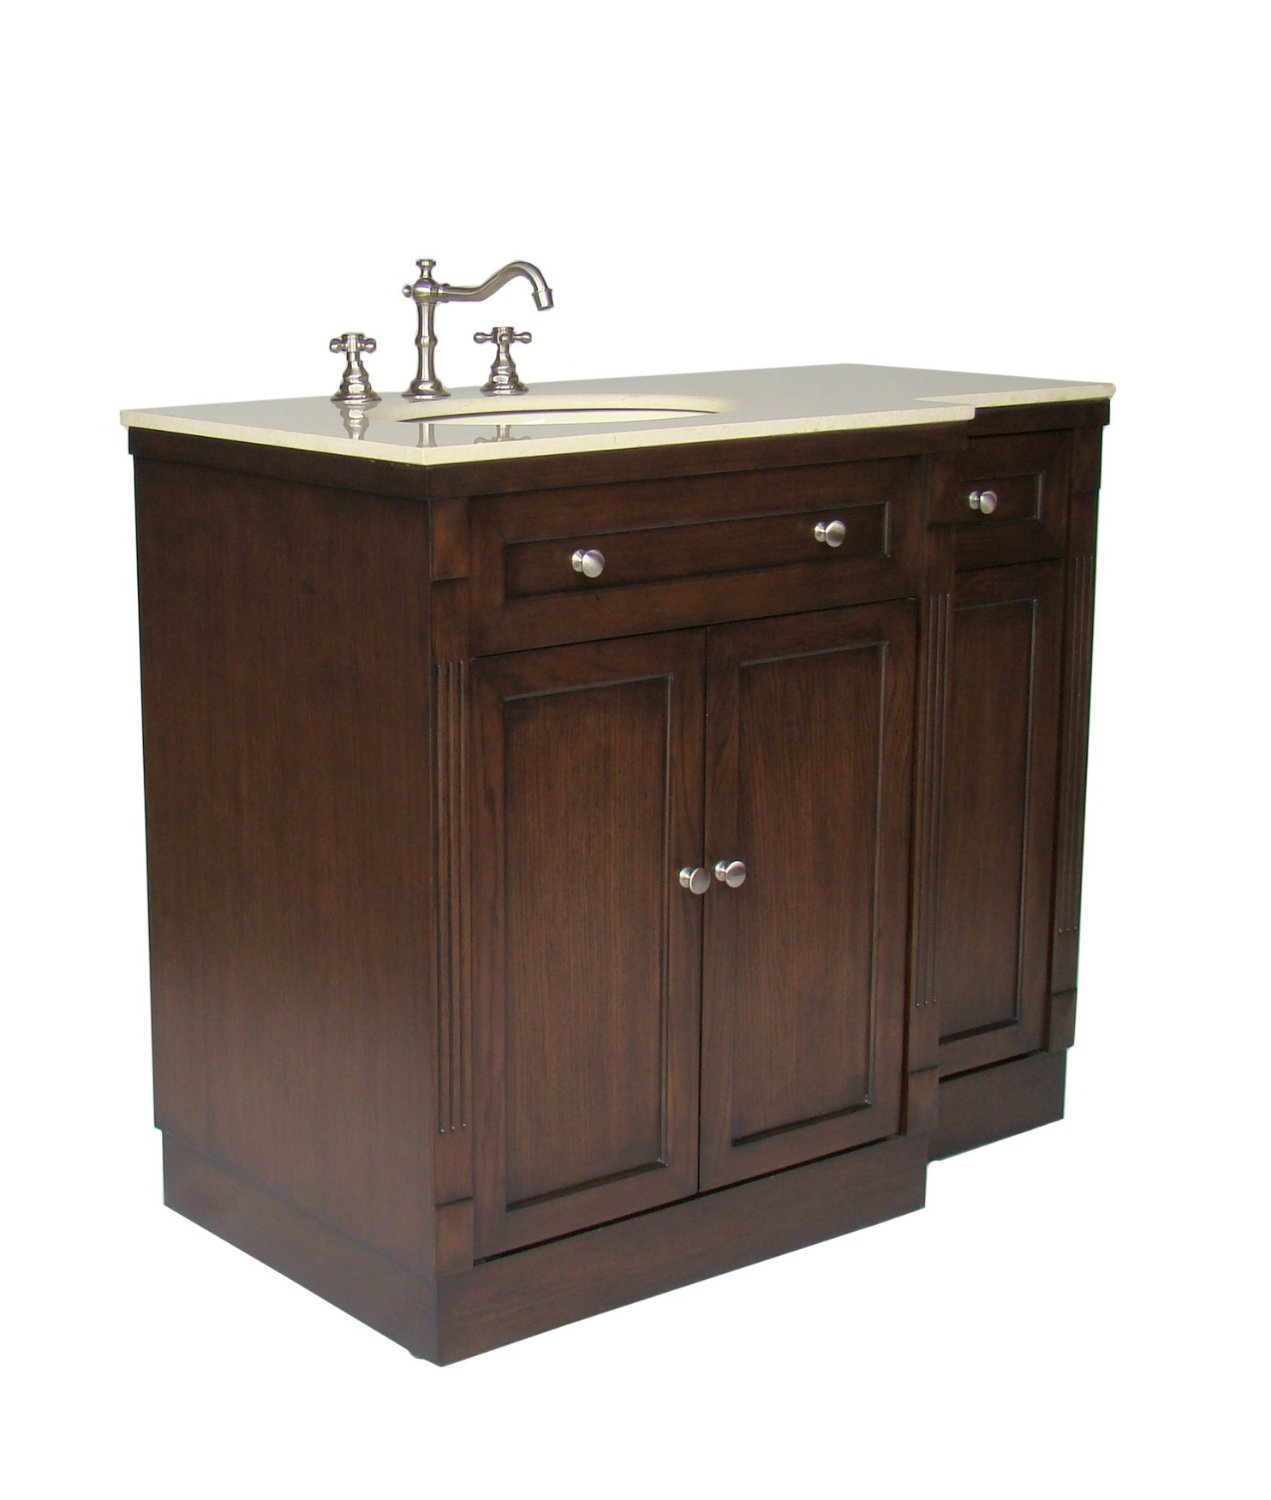 42 Inch Bathroom Vanity Adelina 42 Inch Traditional Bathroom Vanity Fully Assembled